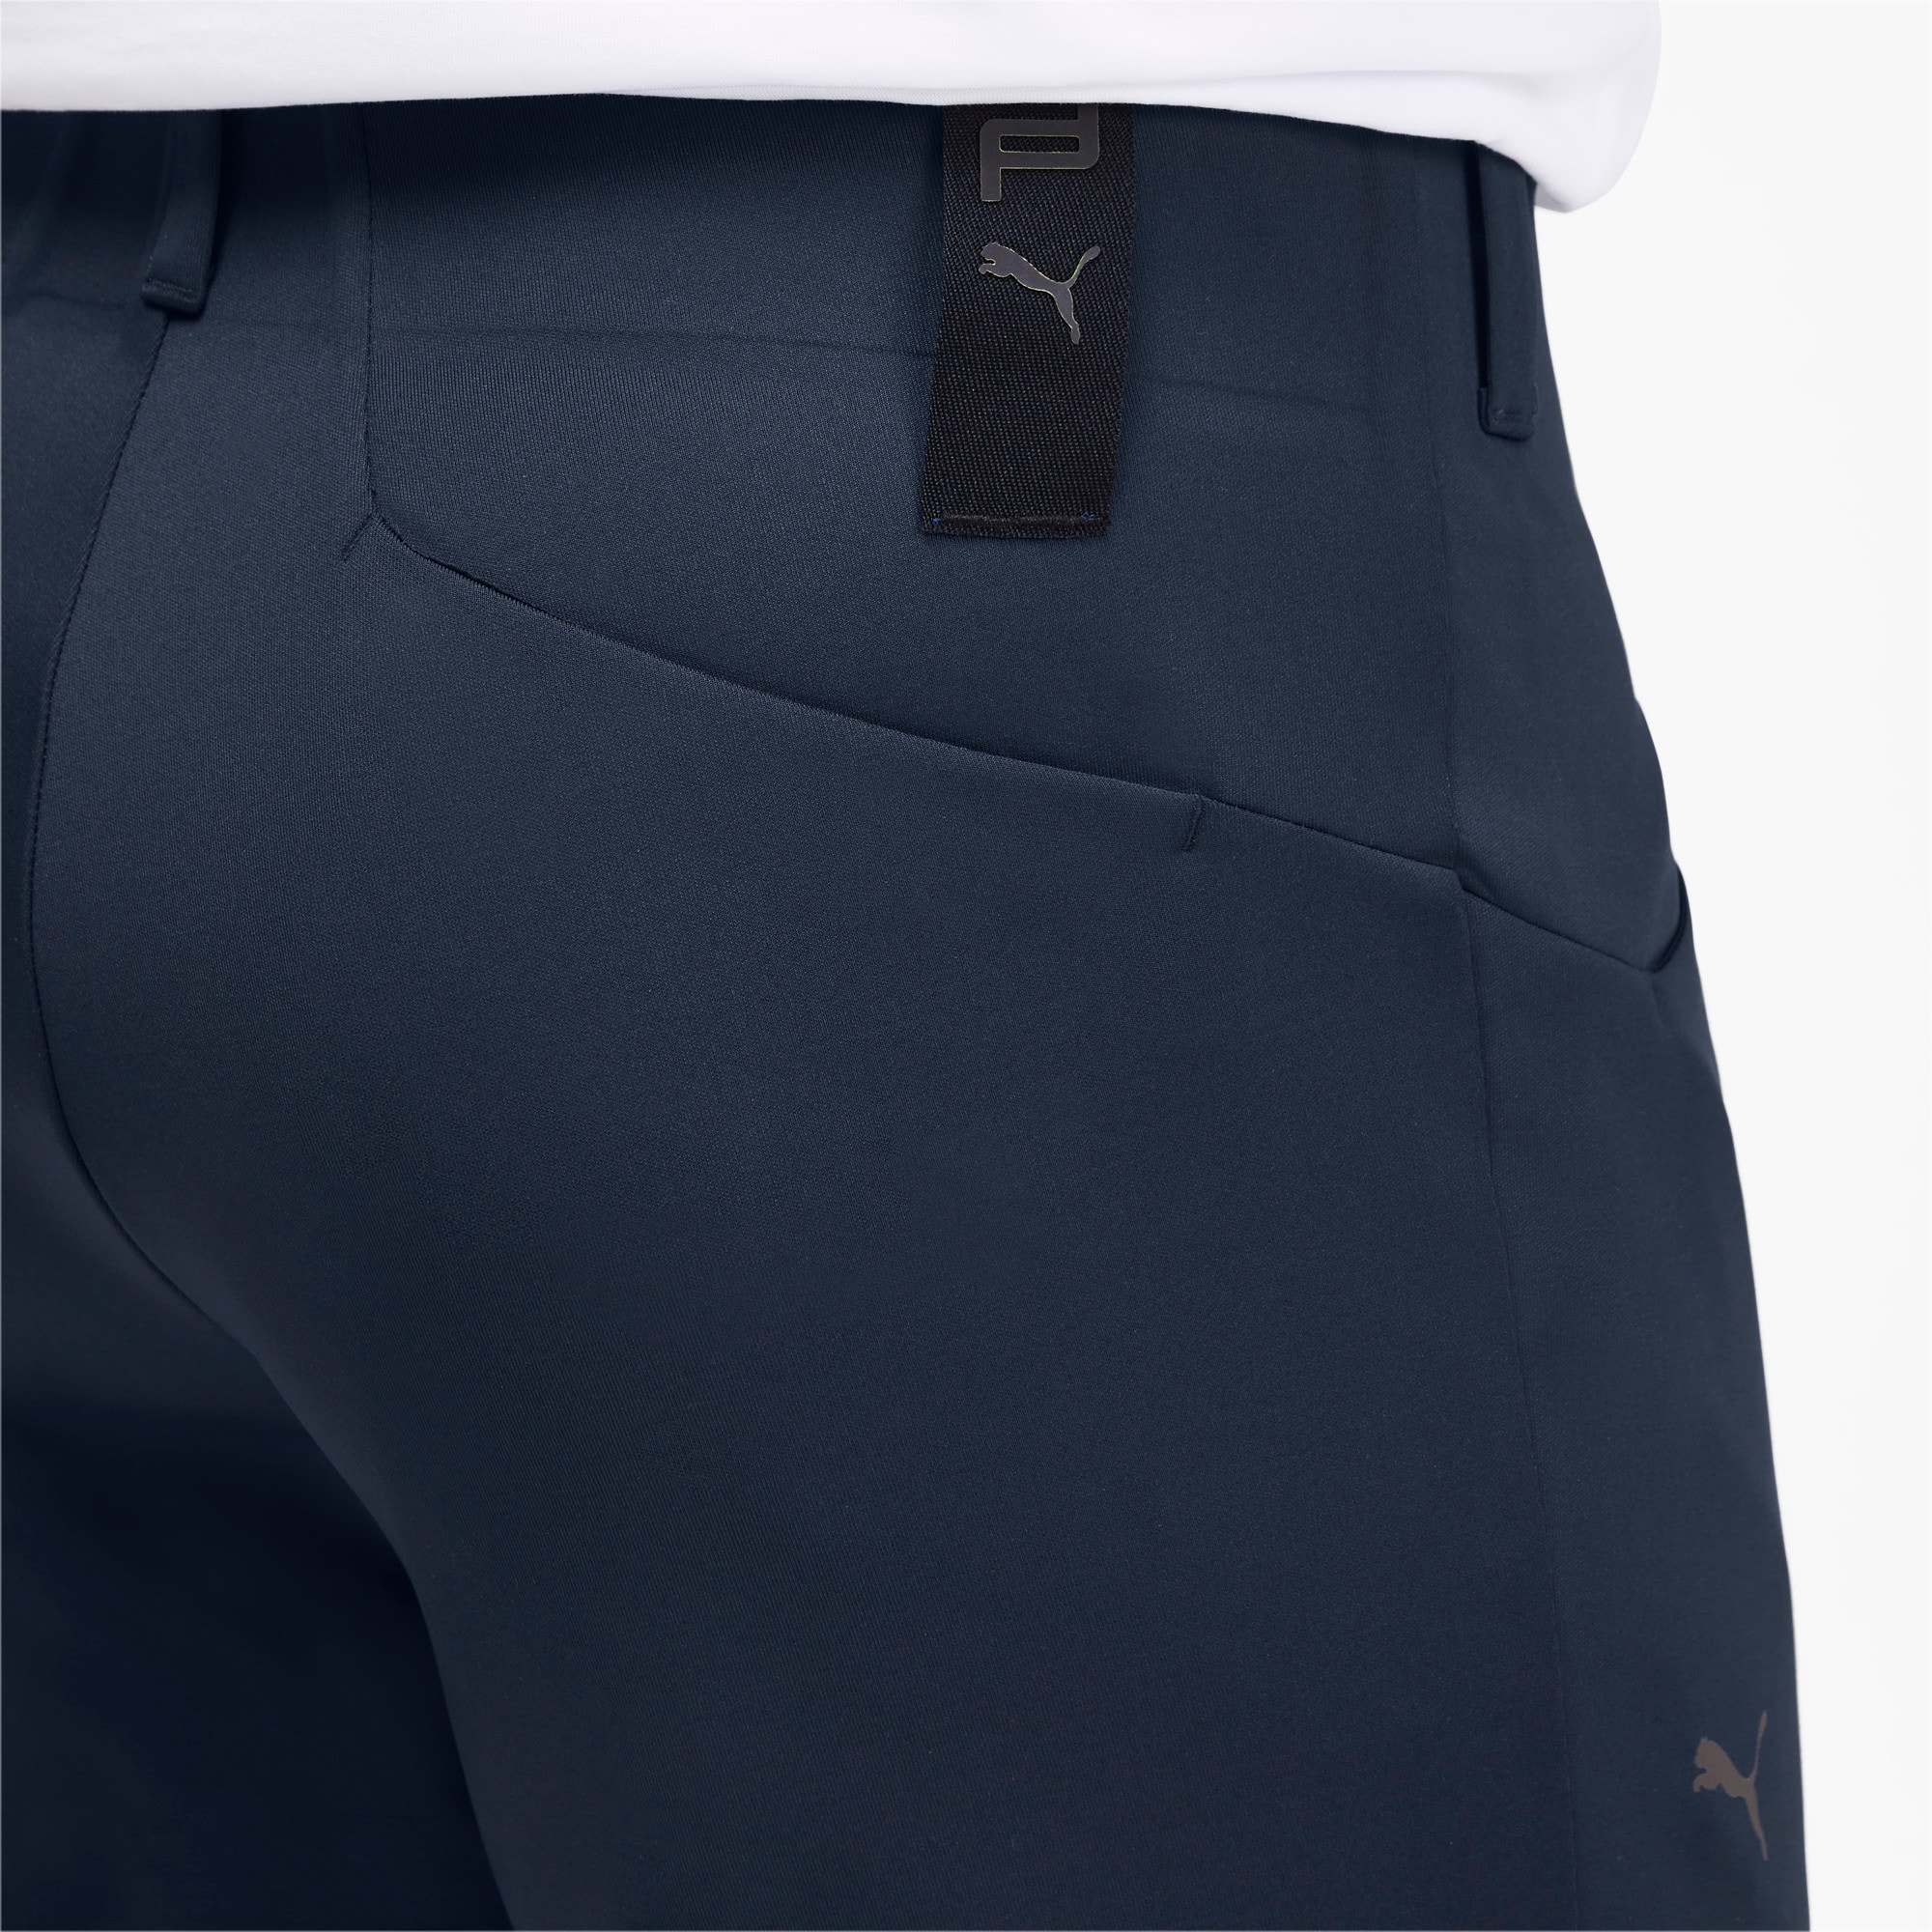 Thumbnail 7 of Porsche Design Herren 5 Pocket Hose, Navy Blazer, medium